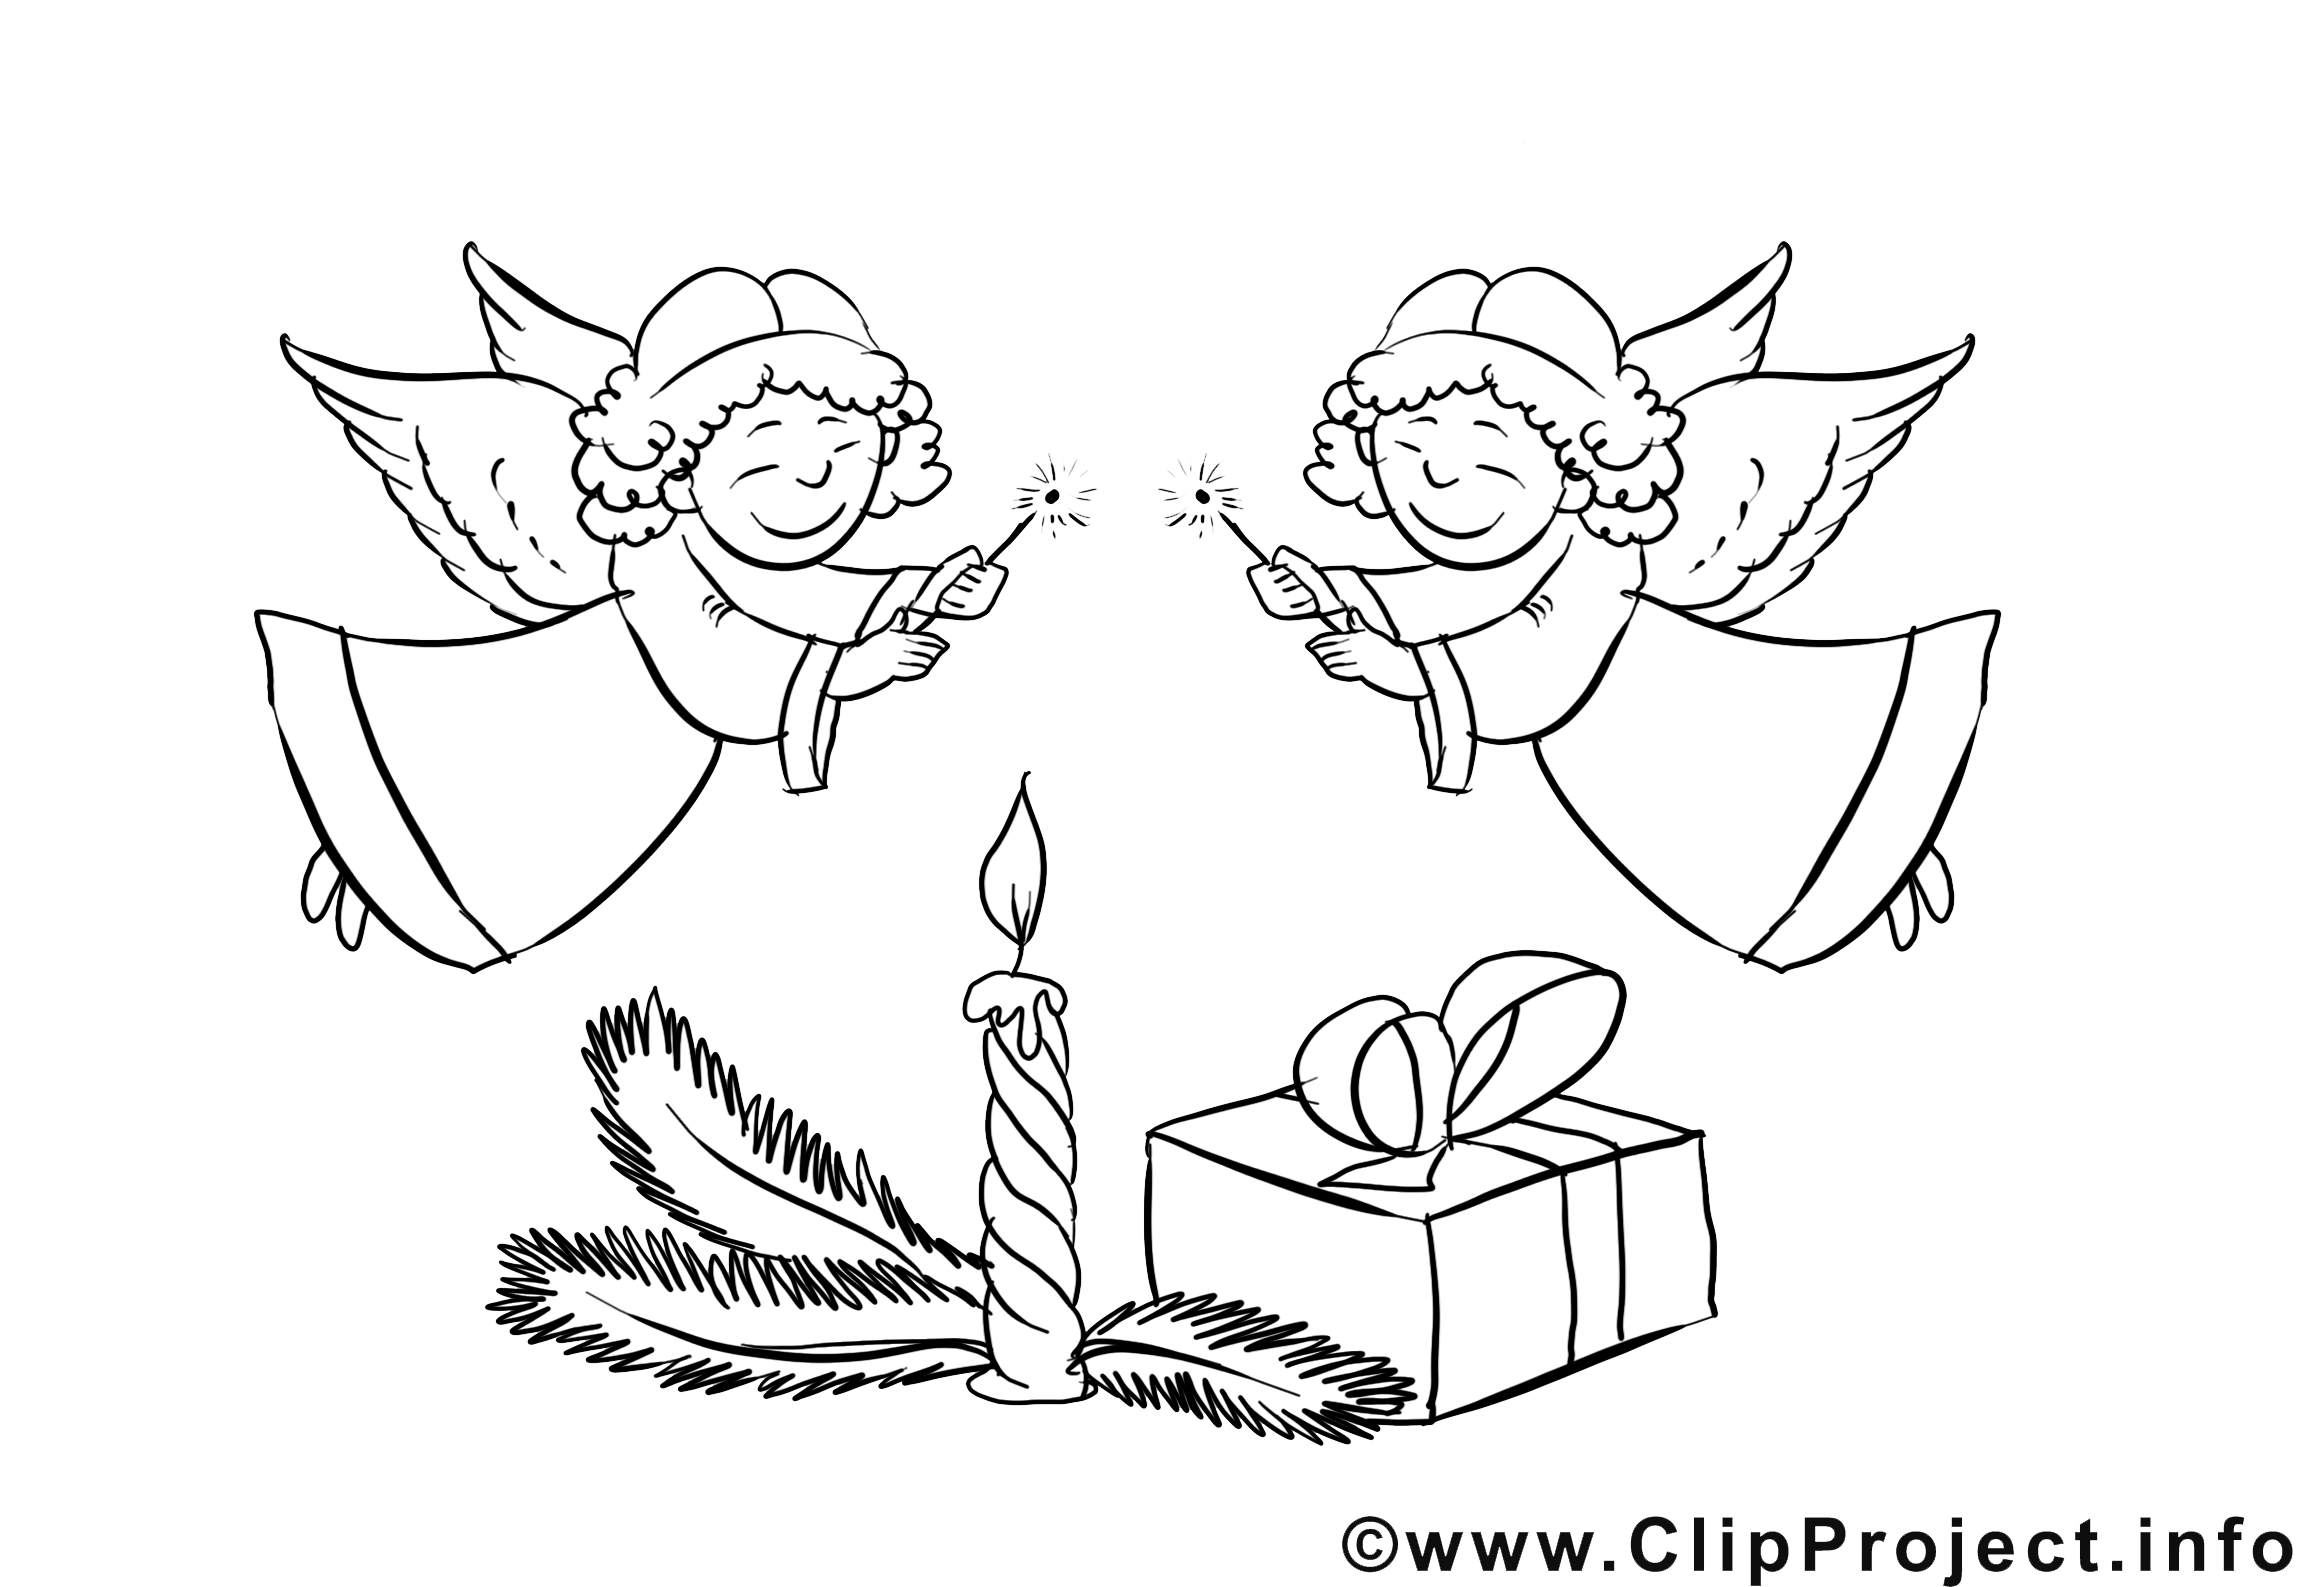 Anges dessin à télécharger – Noël à colorier